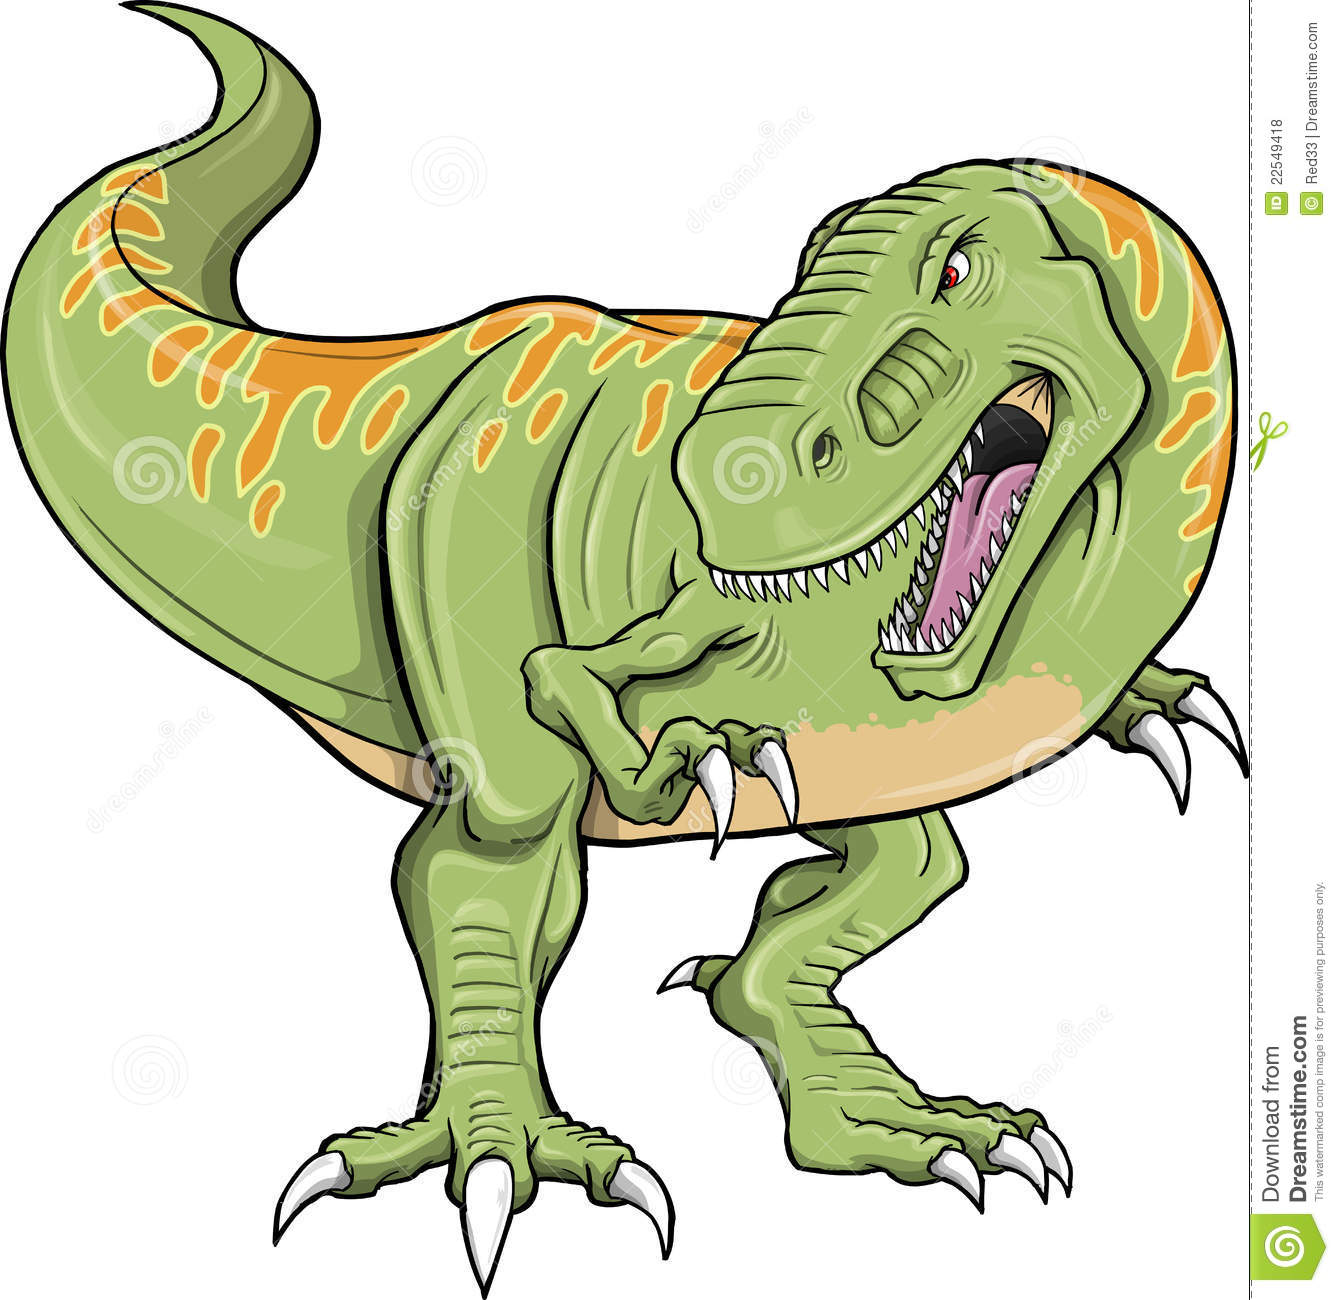 Tyrannosaurus Rex clipart #18, Download drawings